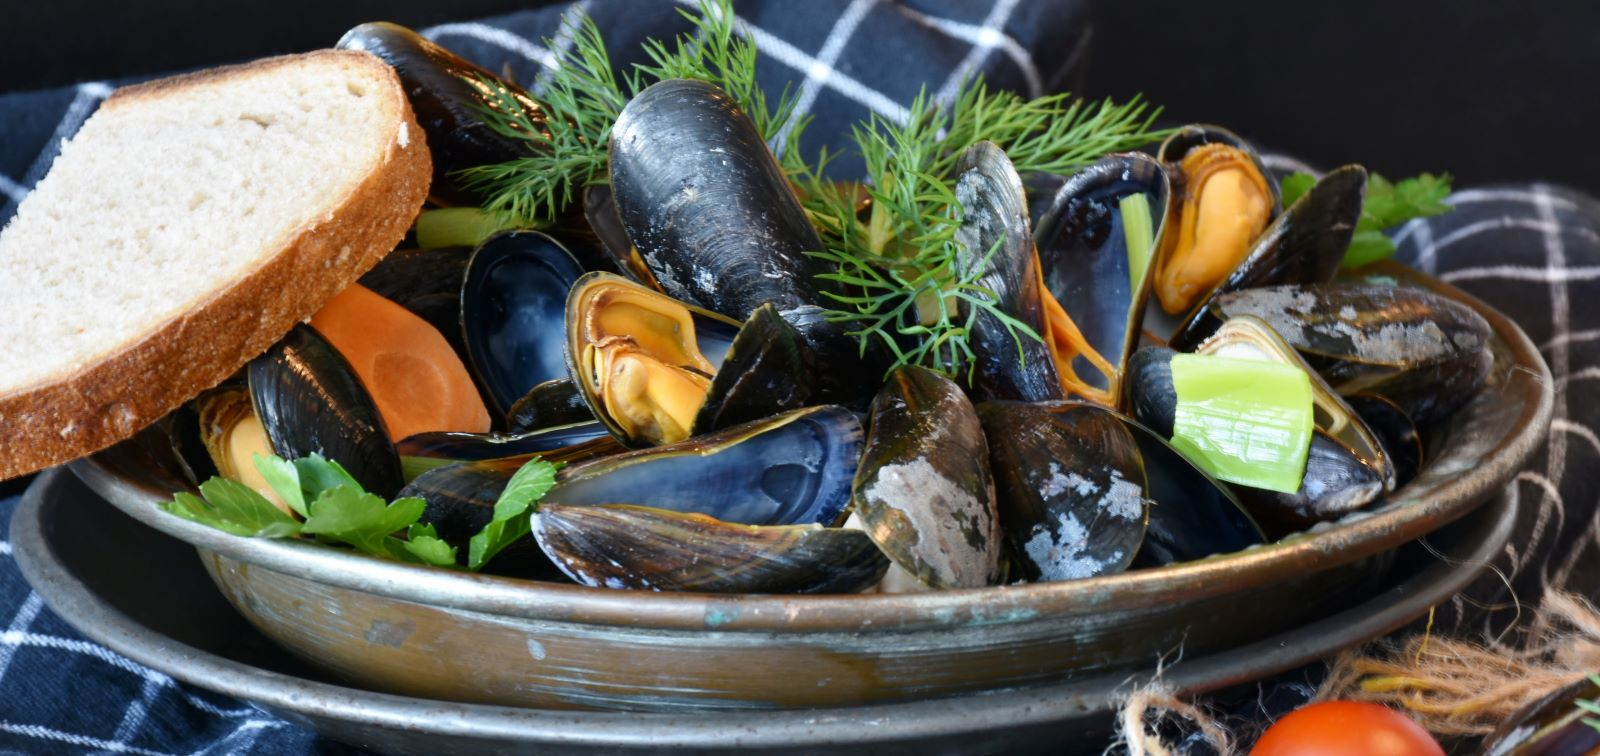 Mussels and vegetables in a clay bowl with dill and cilantro garnish and piece of bread set on the edge of the bowl